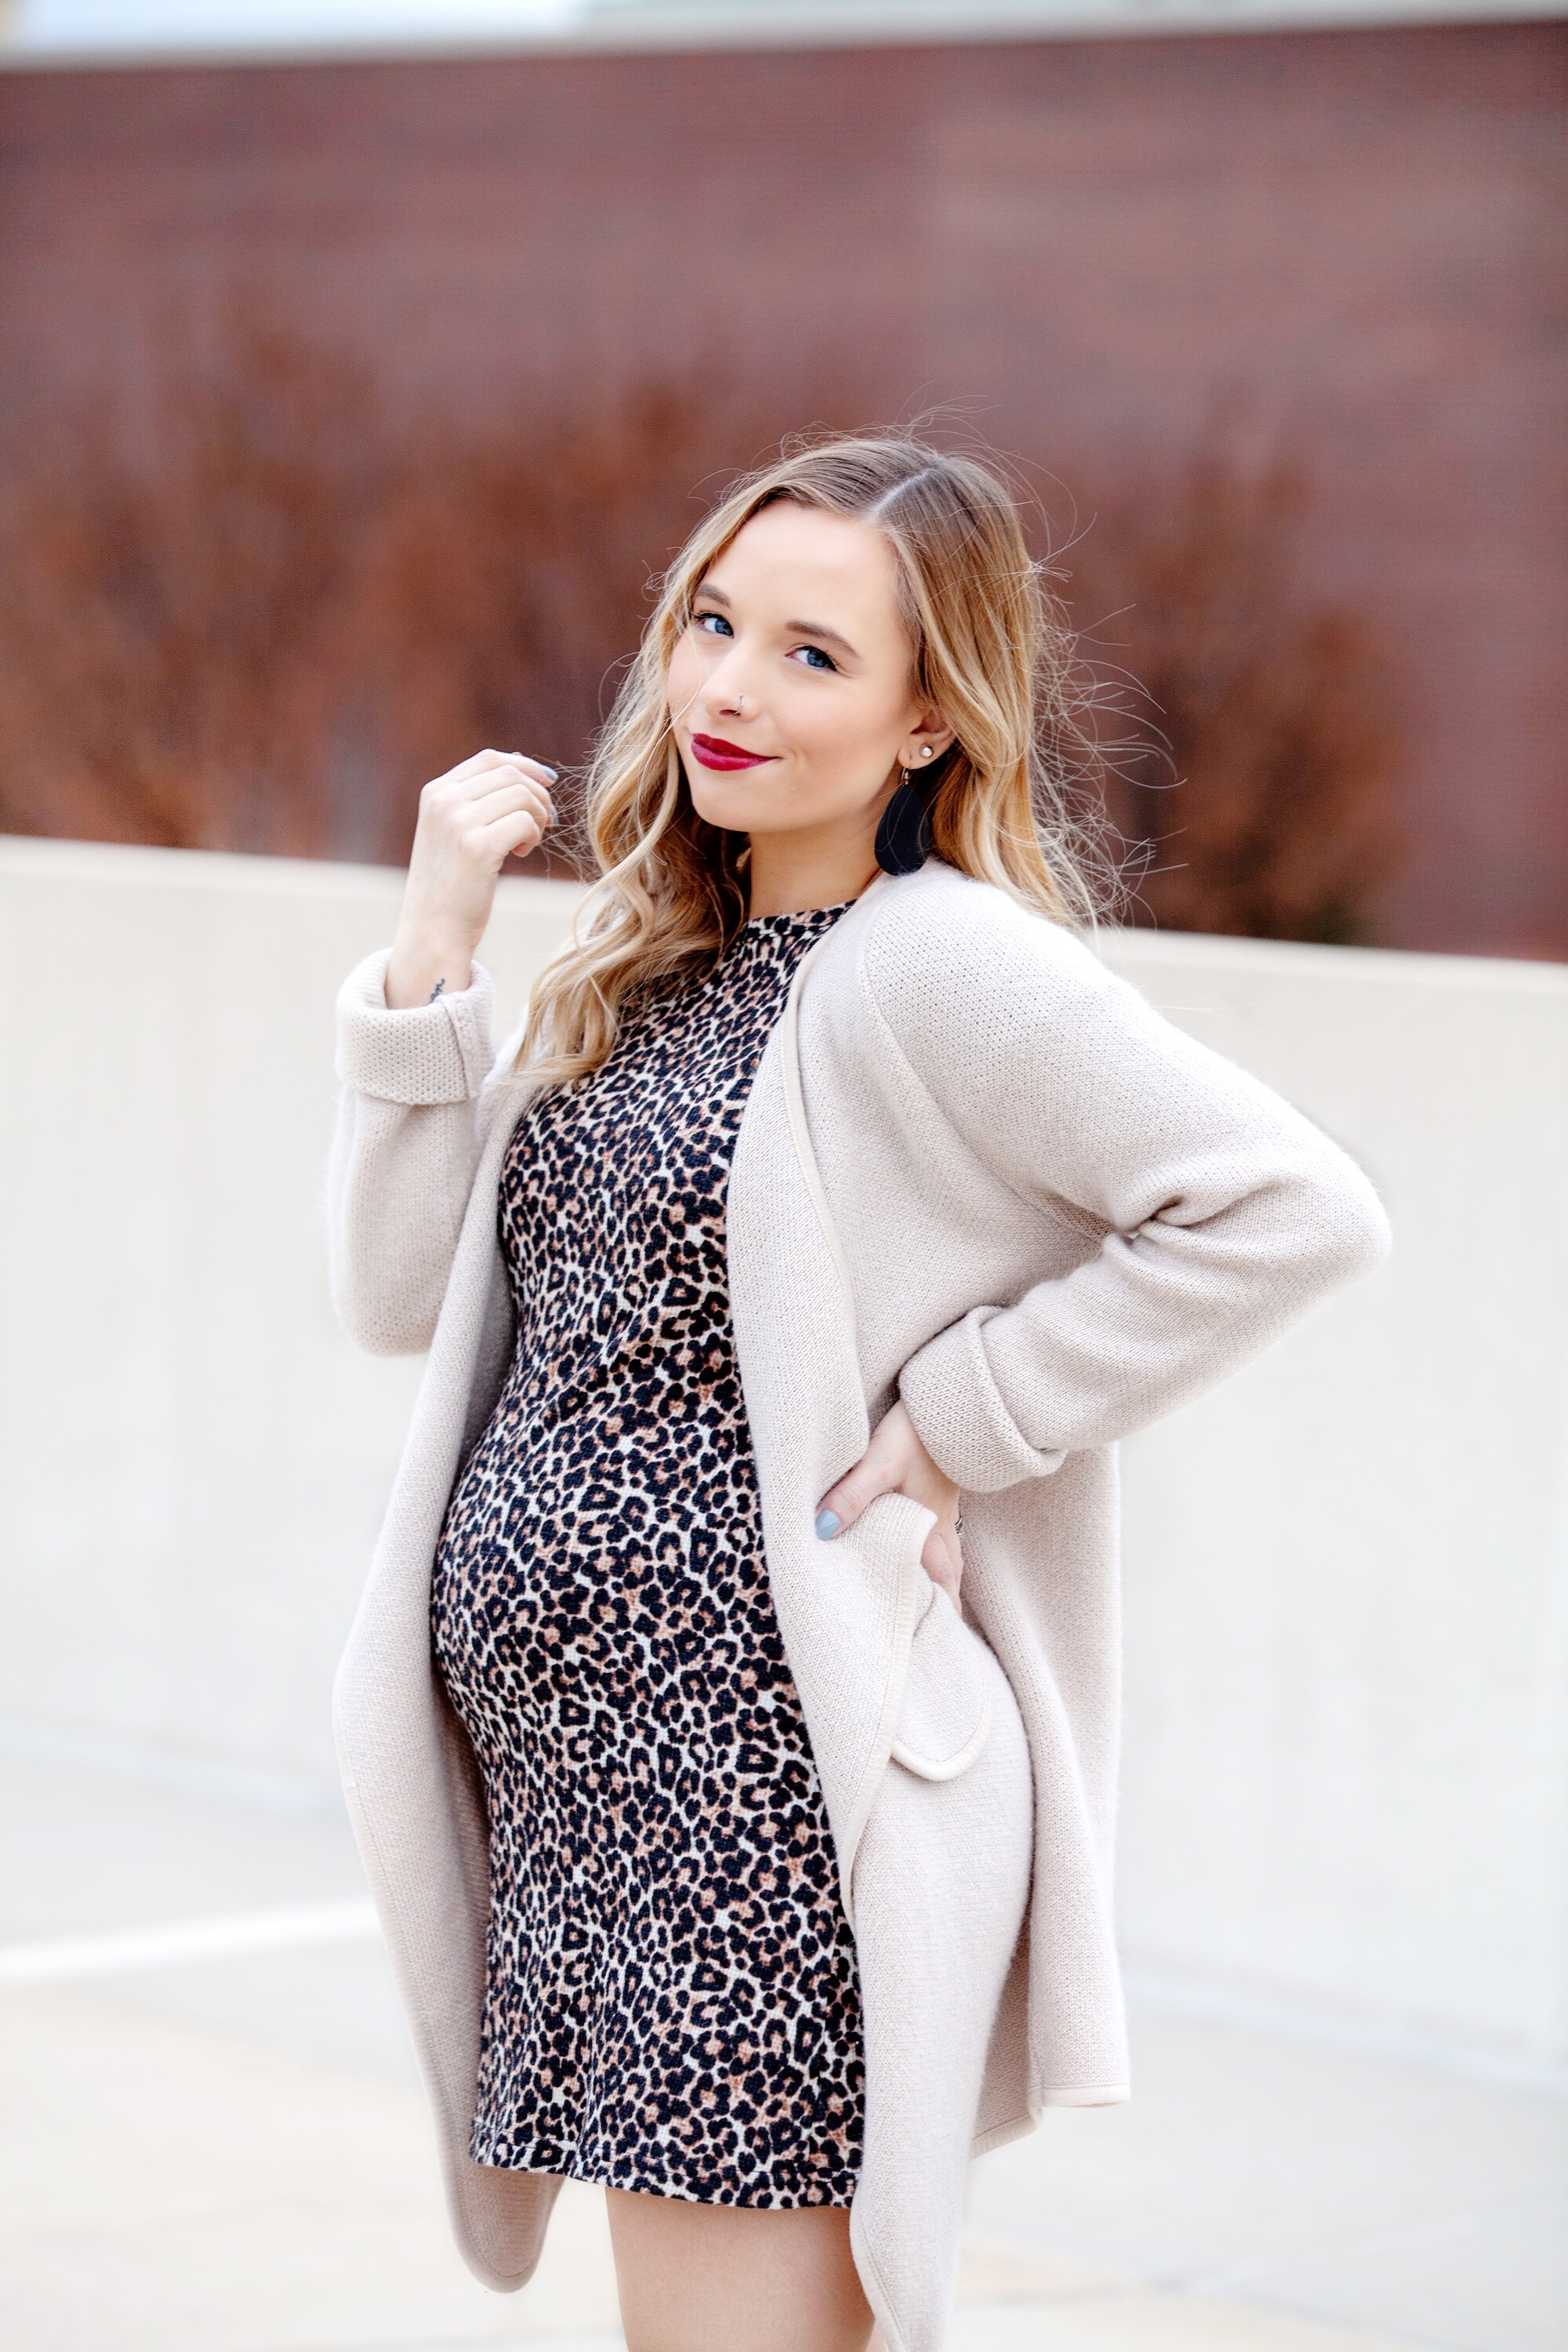 Second Trimester Outfit Ideas